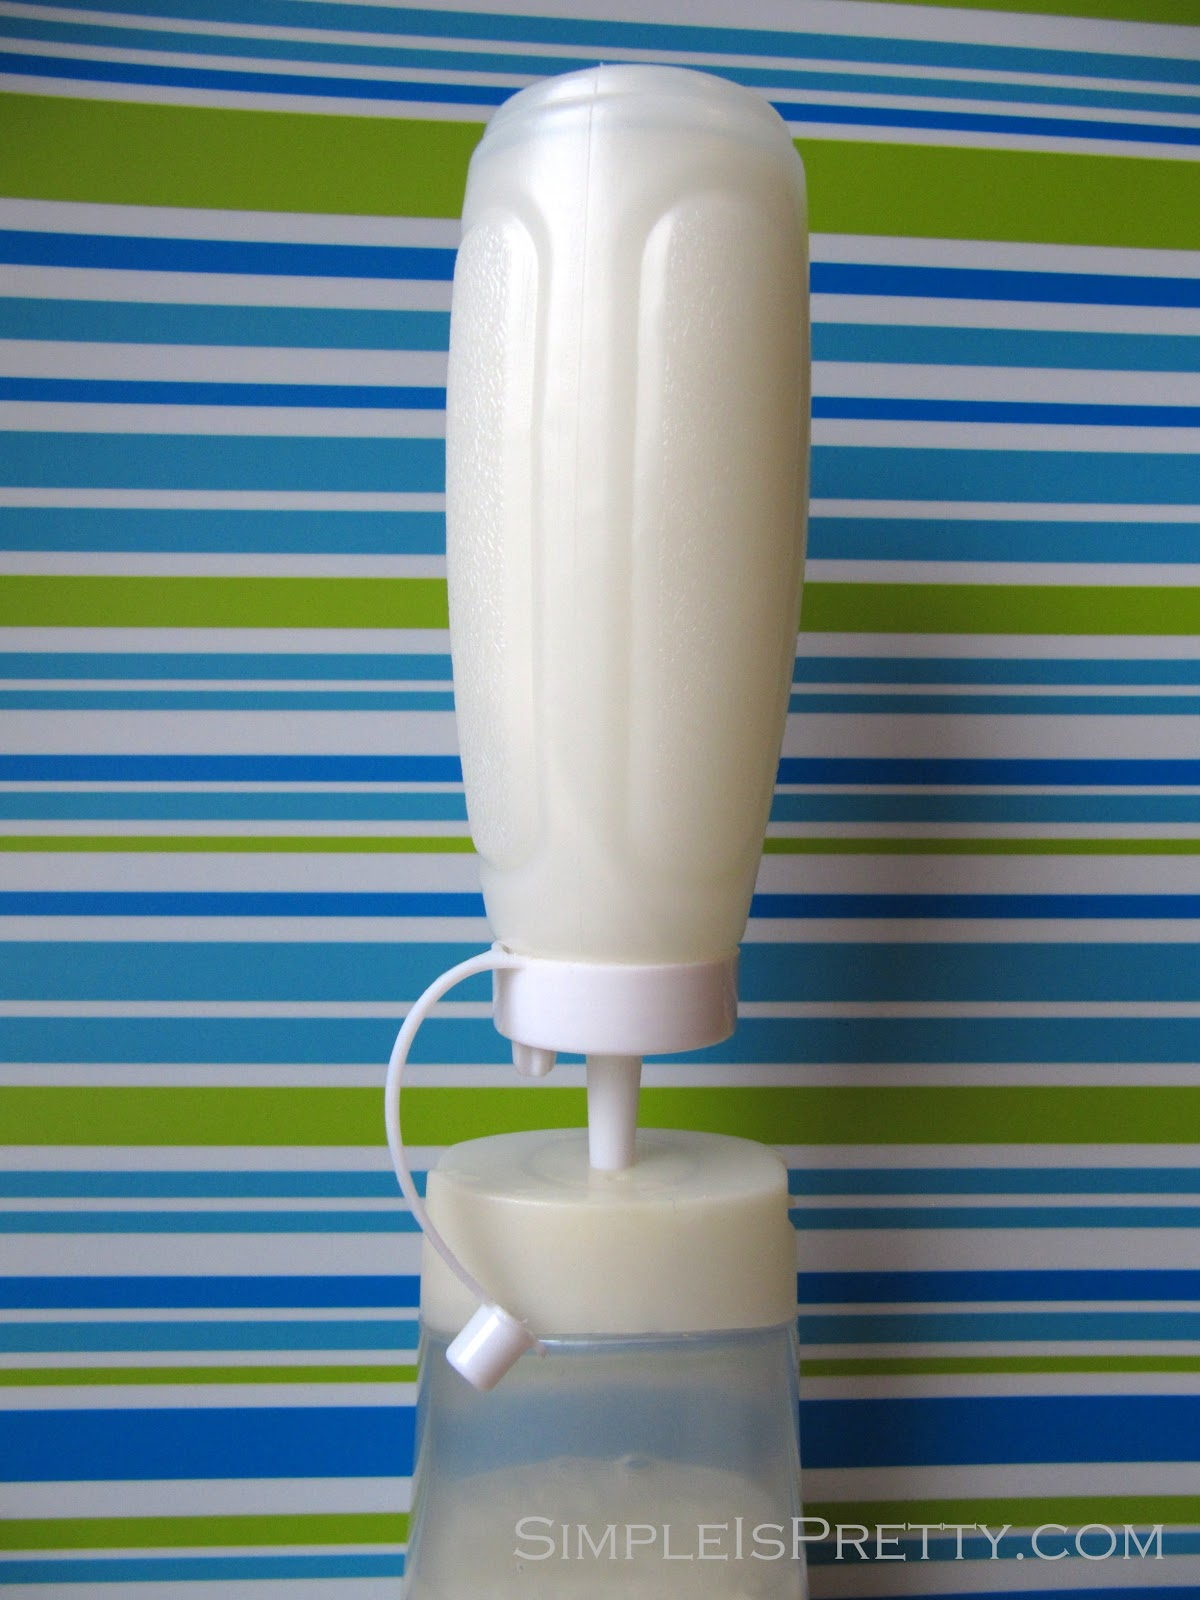 Simple is Pretty: DIY Refill for Lysol No Touch Hand Soap Dispenser